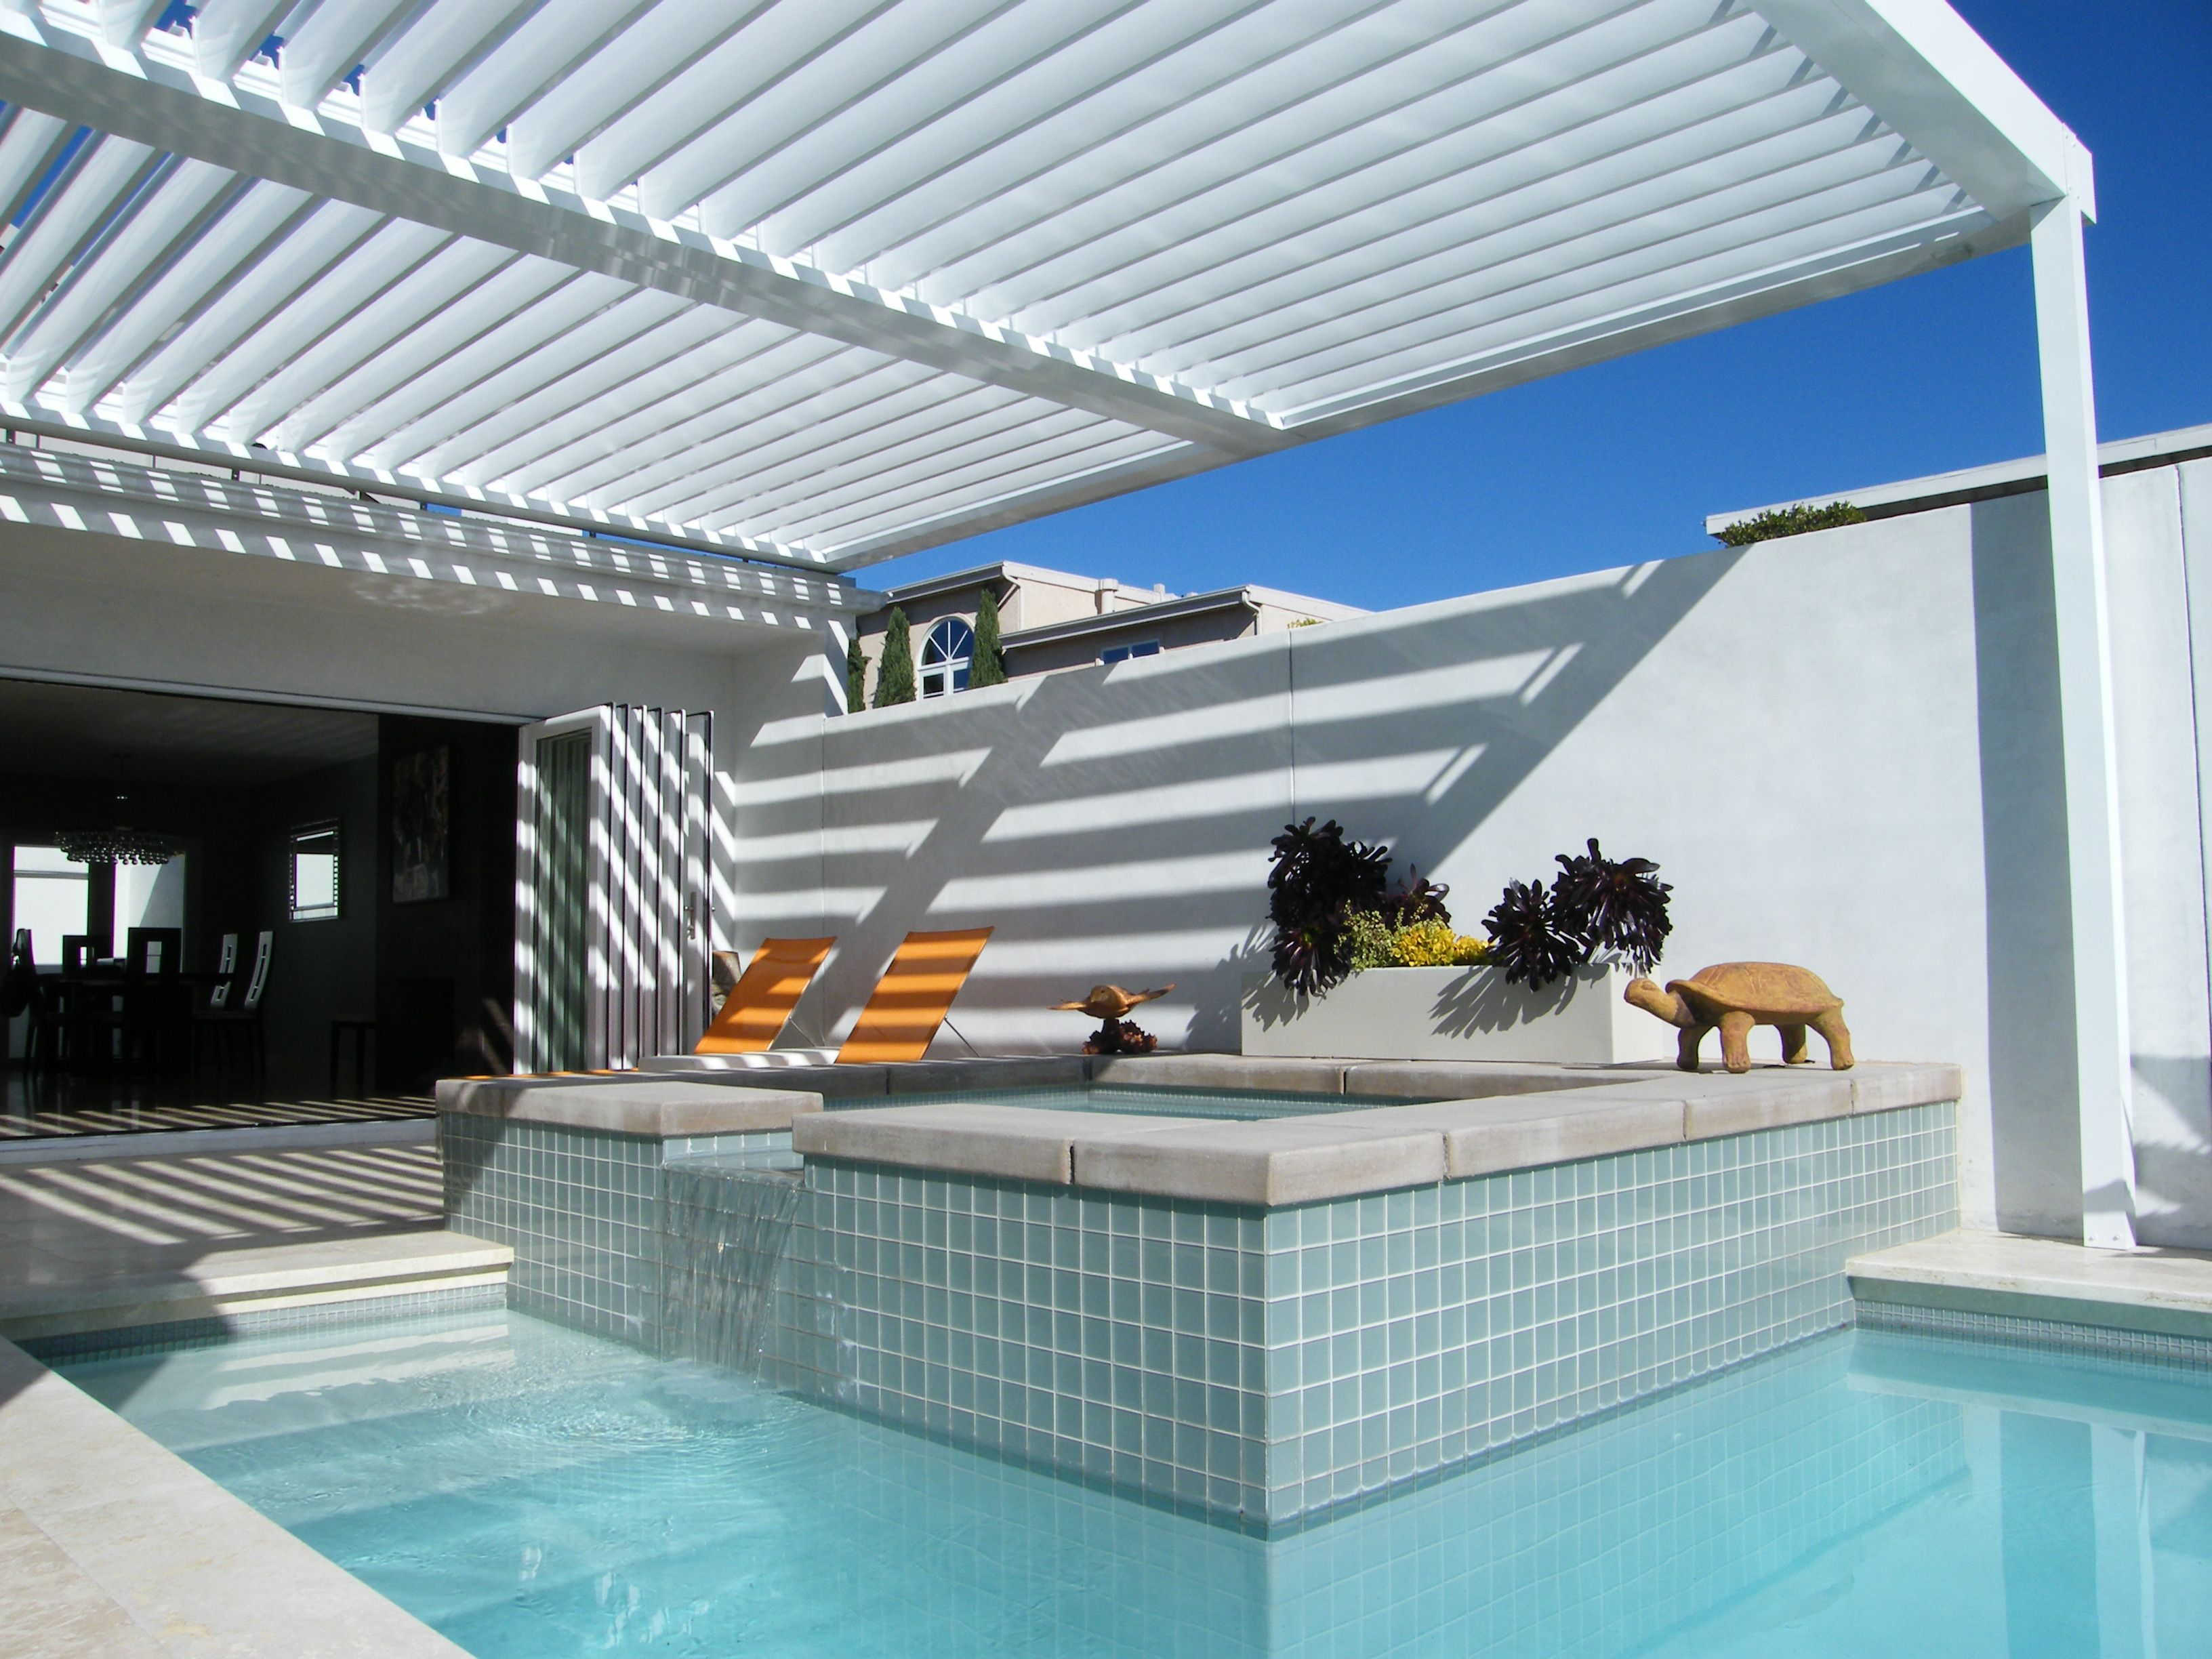 Equinox Louvered Roof System Patio Cover Alumawood Factory throughout proportions 3264 X 2448